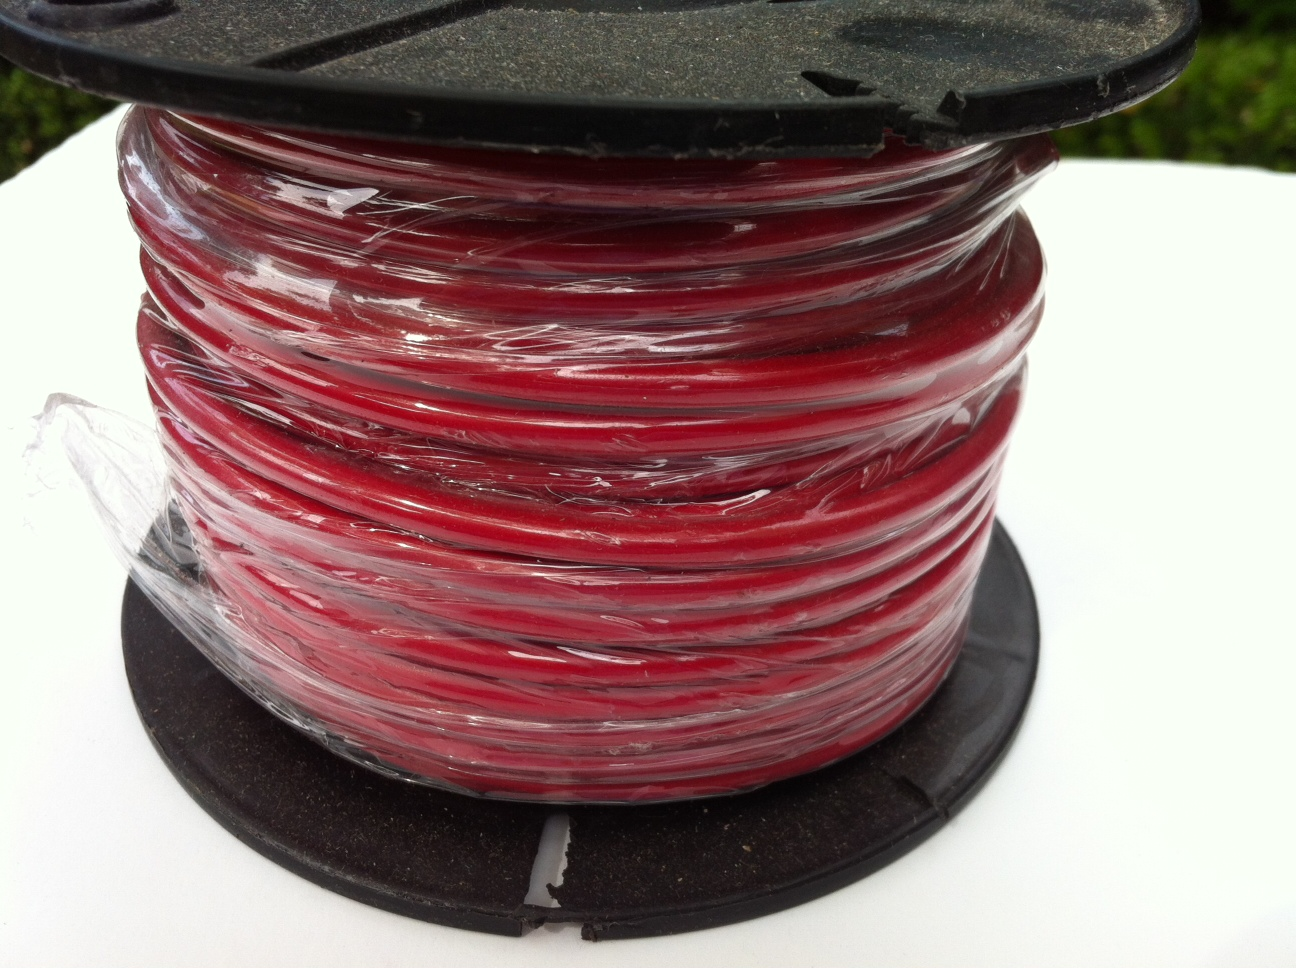 5mm red electrical wire 30M spool